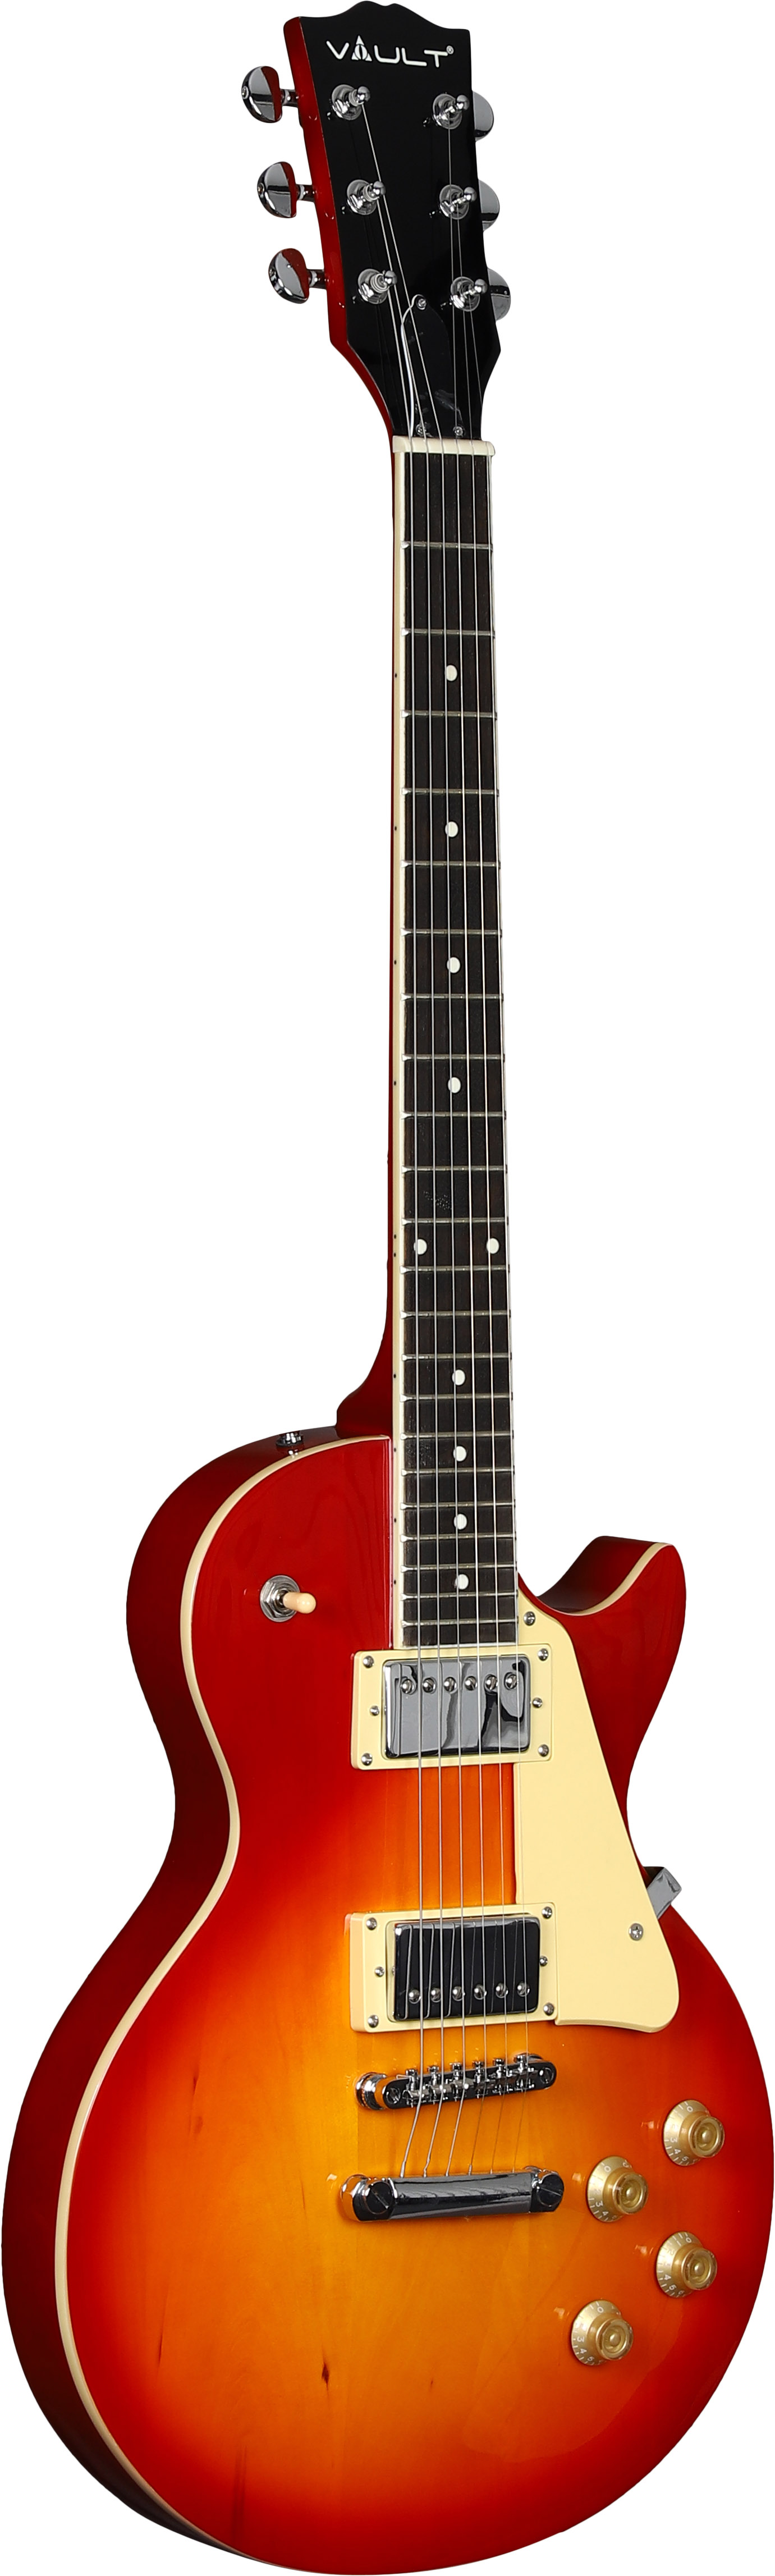 Vault-LP1-Ovangkol-Fretboard-Electric-Guitar-Cherry-Red-Burst-w-Gig-Bag thumbnail 3